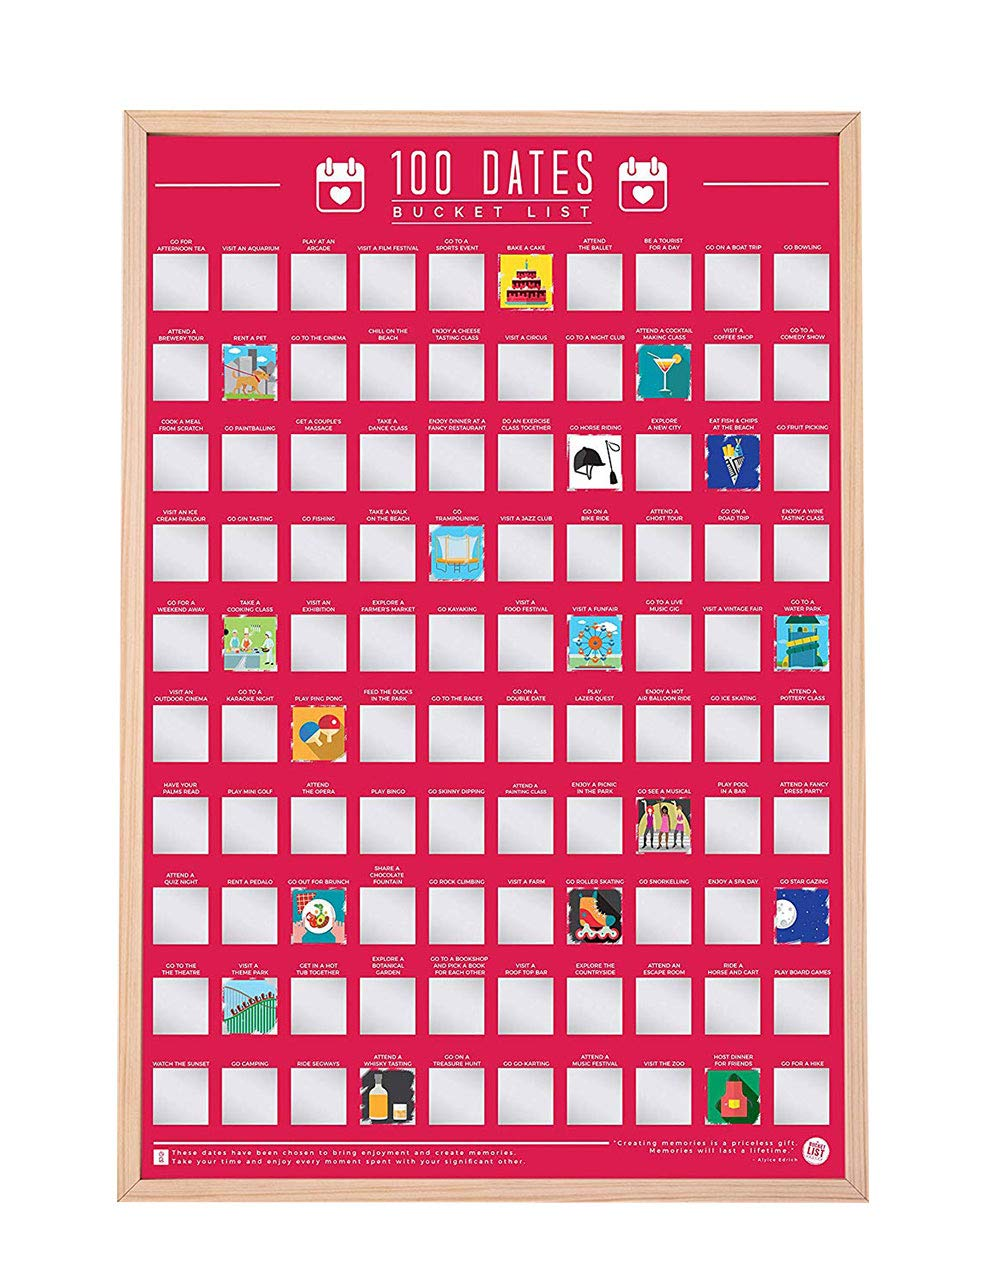 Gift Republic 100 Dates Scratch Bucket List Poster: Amazon co uk